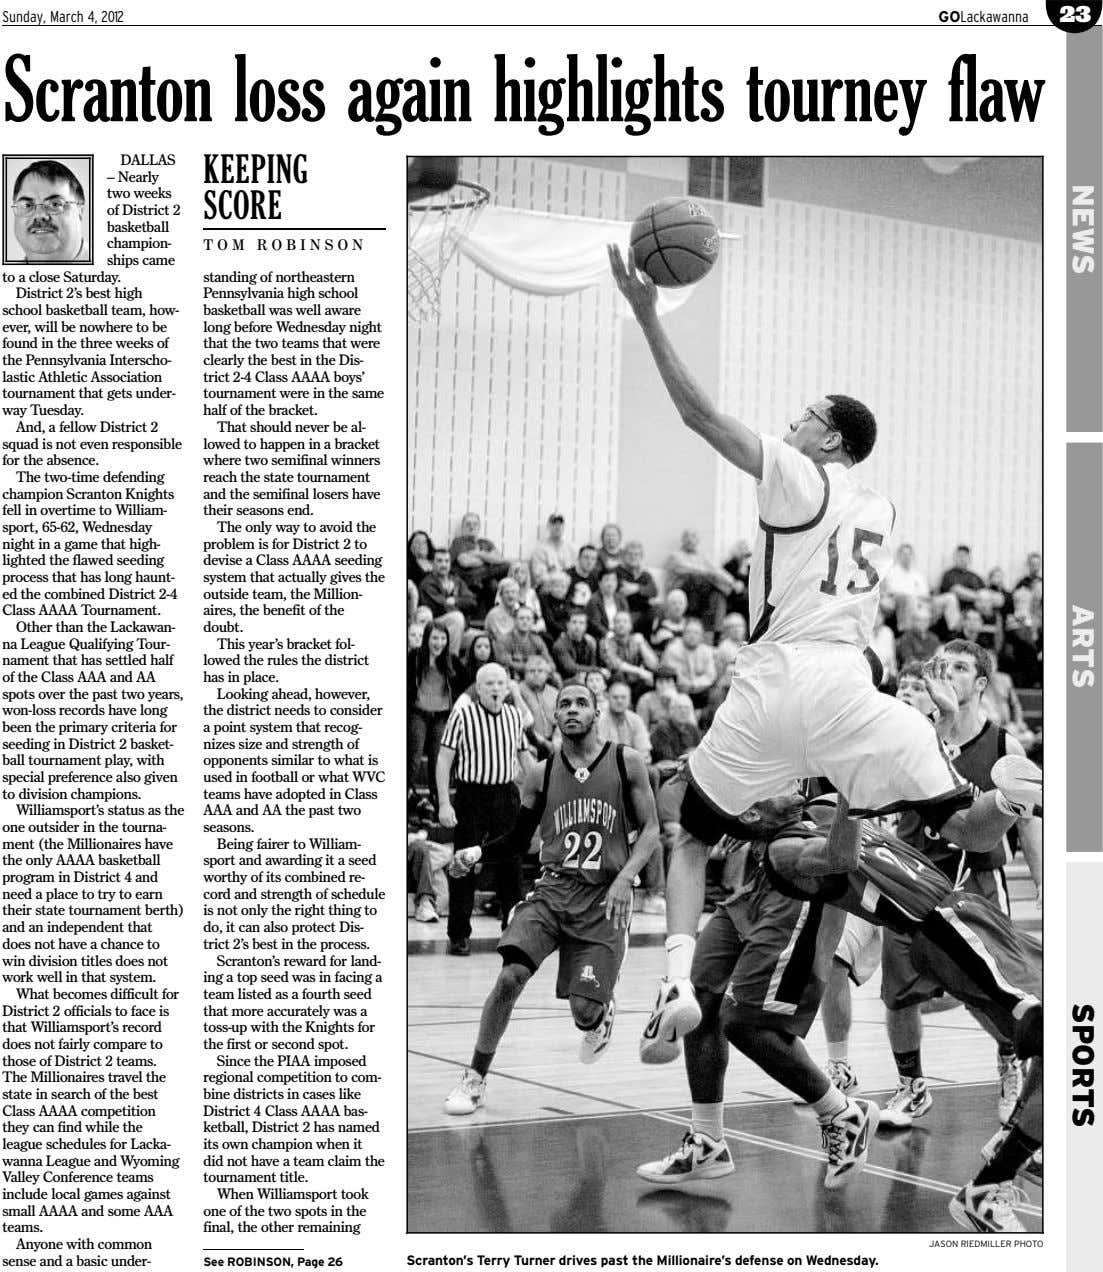 Sunday, March 4, 2012 GOLackawanna 23 Scranton loss again highlights tourney flaw DALLAS KEEPING –